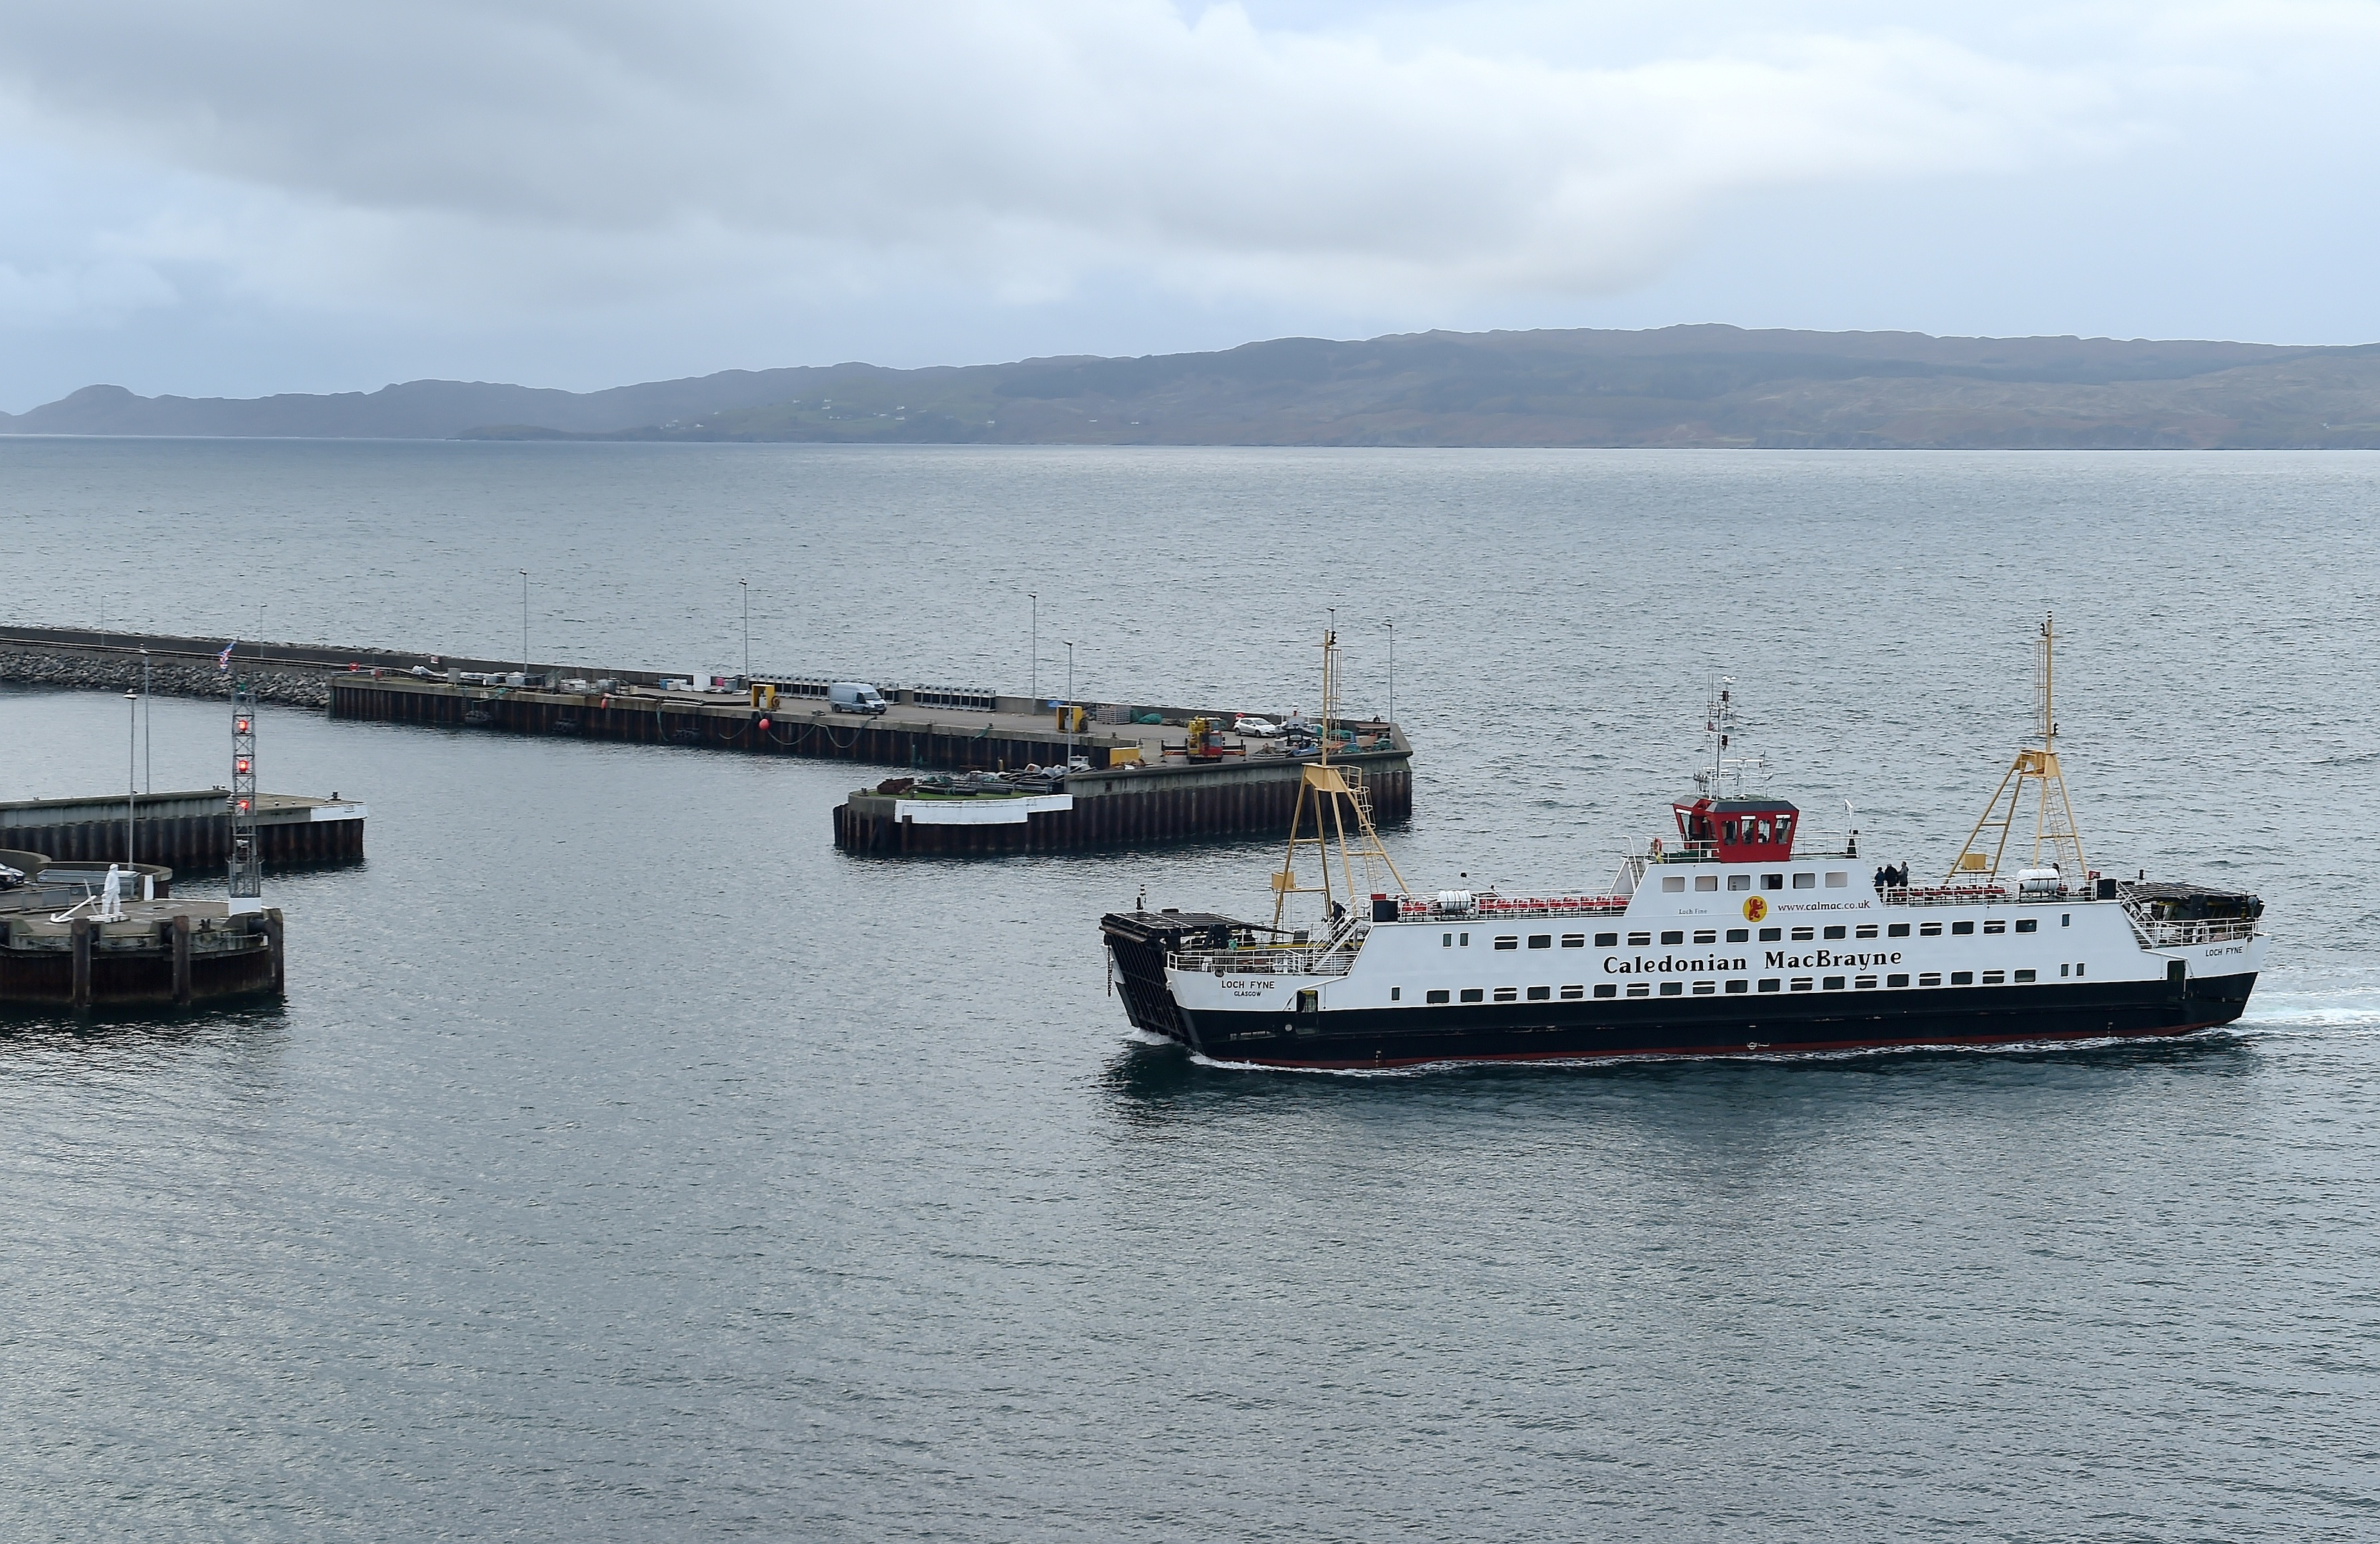 A Caledonian MacBrayne ferry in action